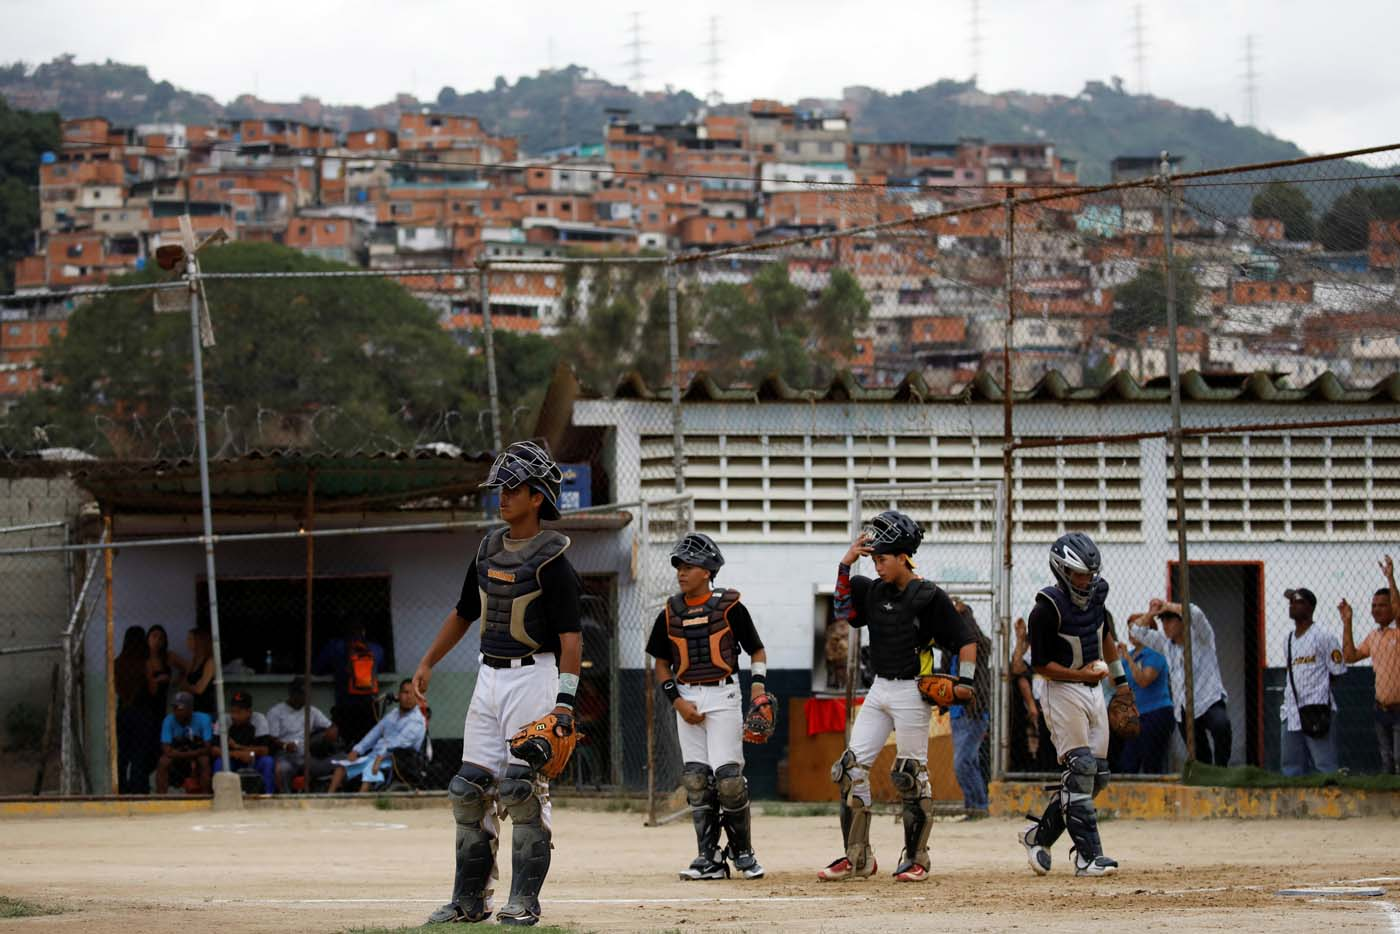 Rivaldo Avila (L) and teammates take part in a baseball showcase in Caracas, Venezuela August 25, 2017. Picture taken August 25, 2017. REUTERS/Carlos Garcia Rawlins